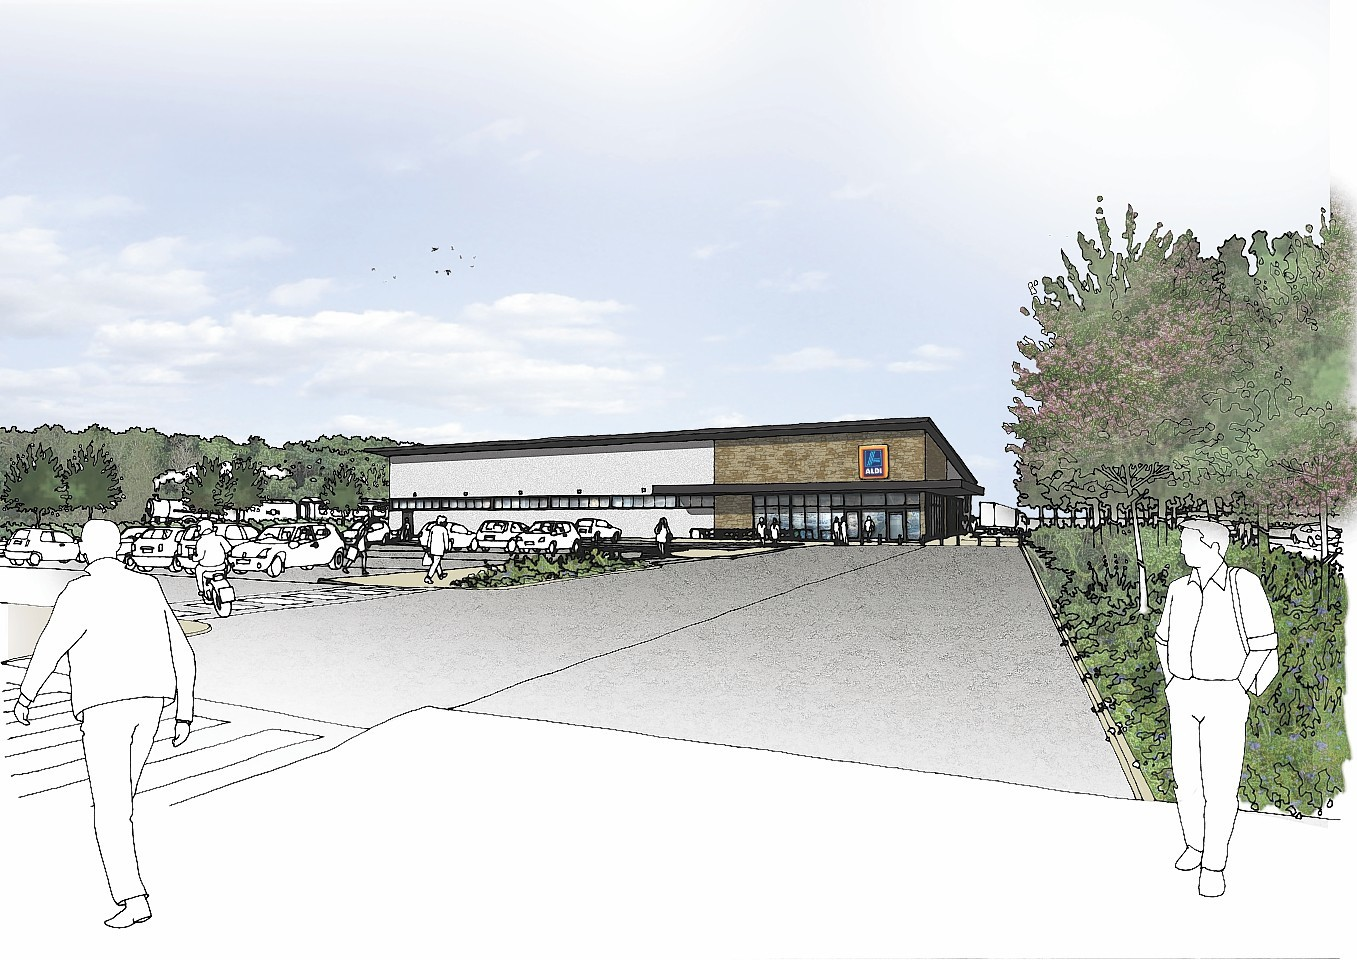 Artist's impression of the proposed retail park at North Road, Fort William